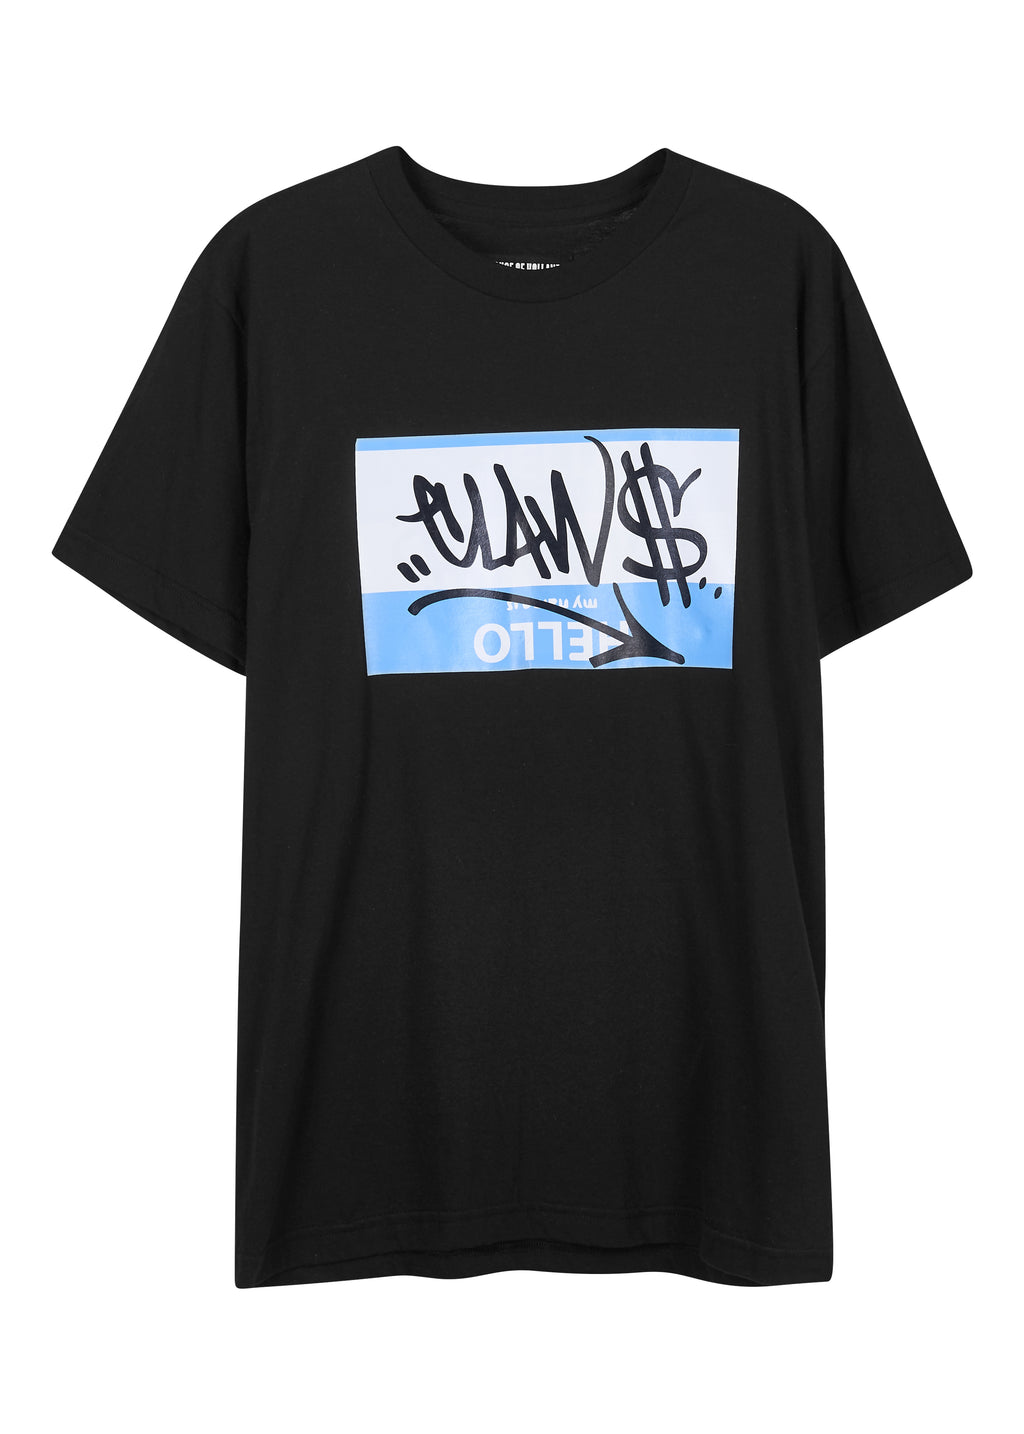 @clawmoney 'My Name Is..' Tee